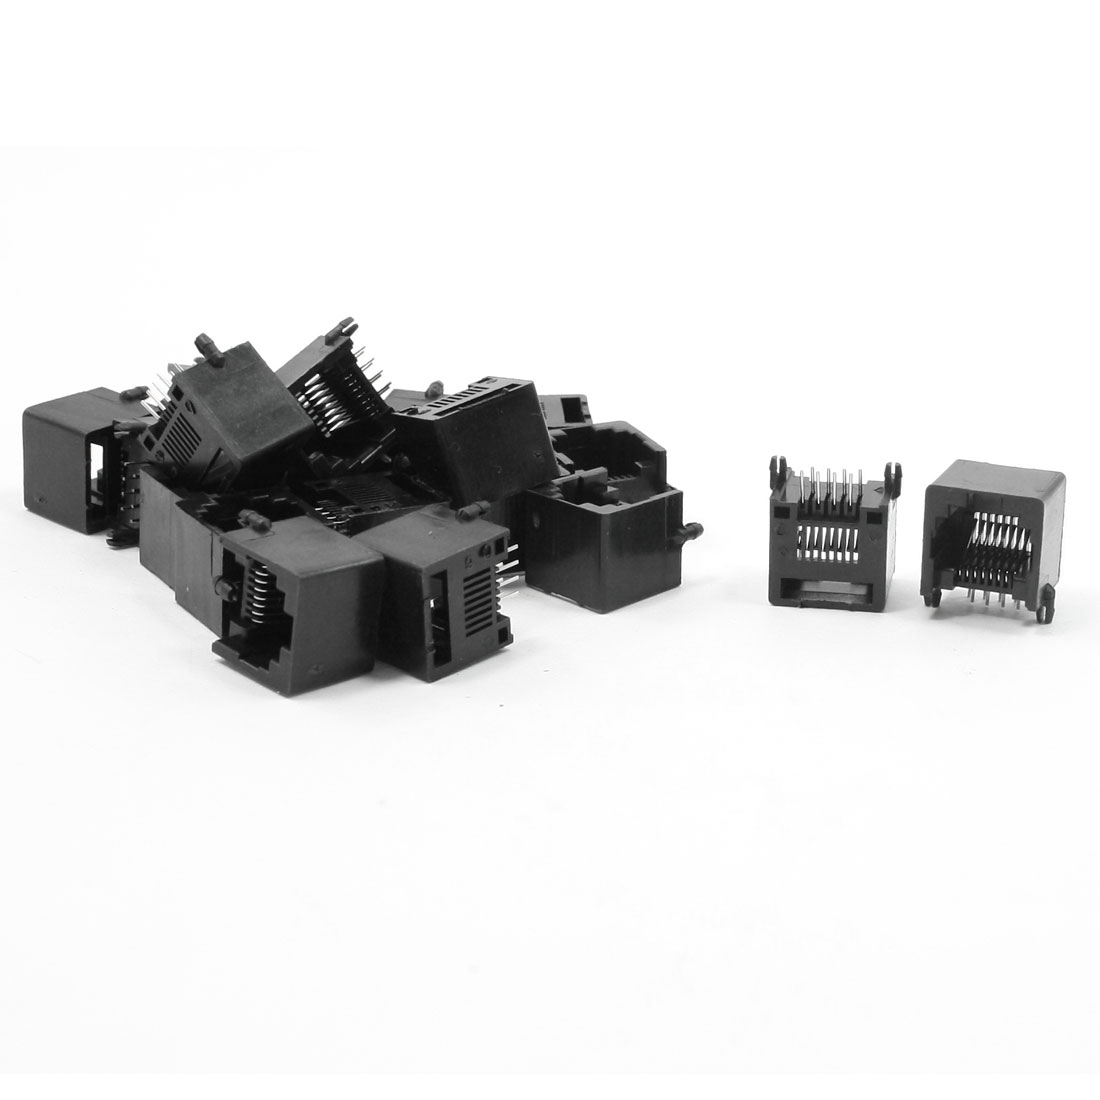 20pcs RJ45 8P8C Black Plastic Internet Network PCB Jack Socket